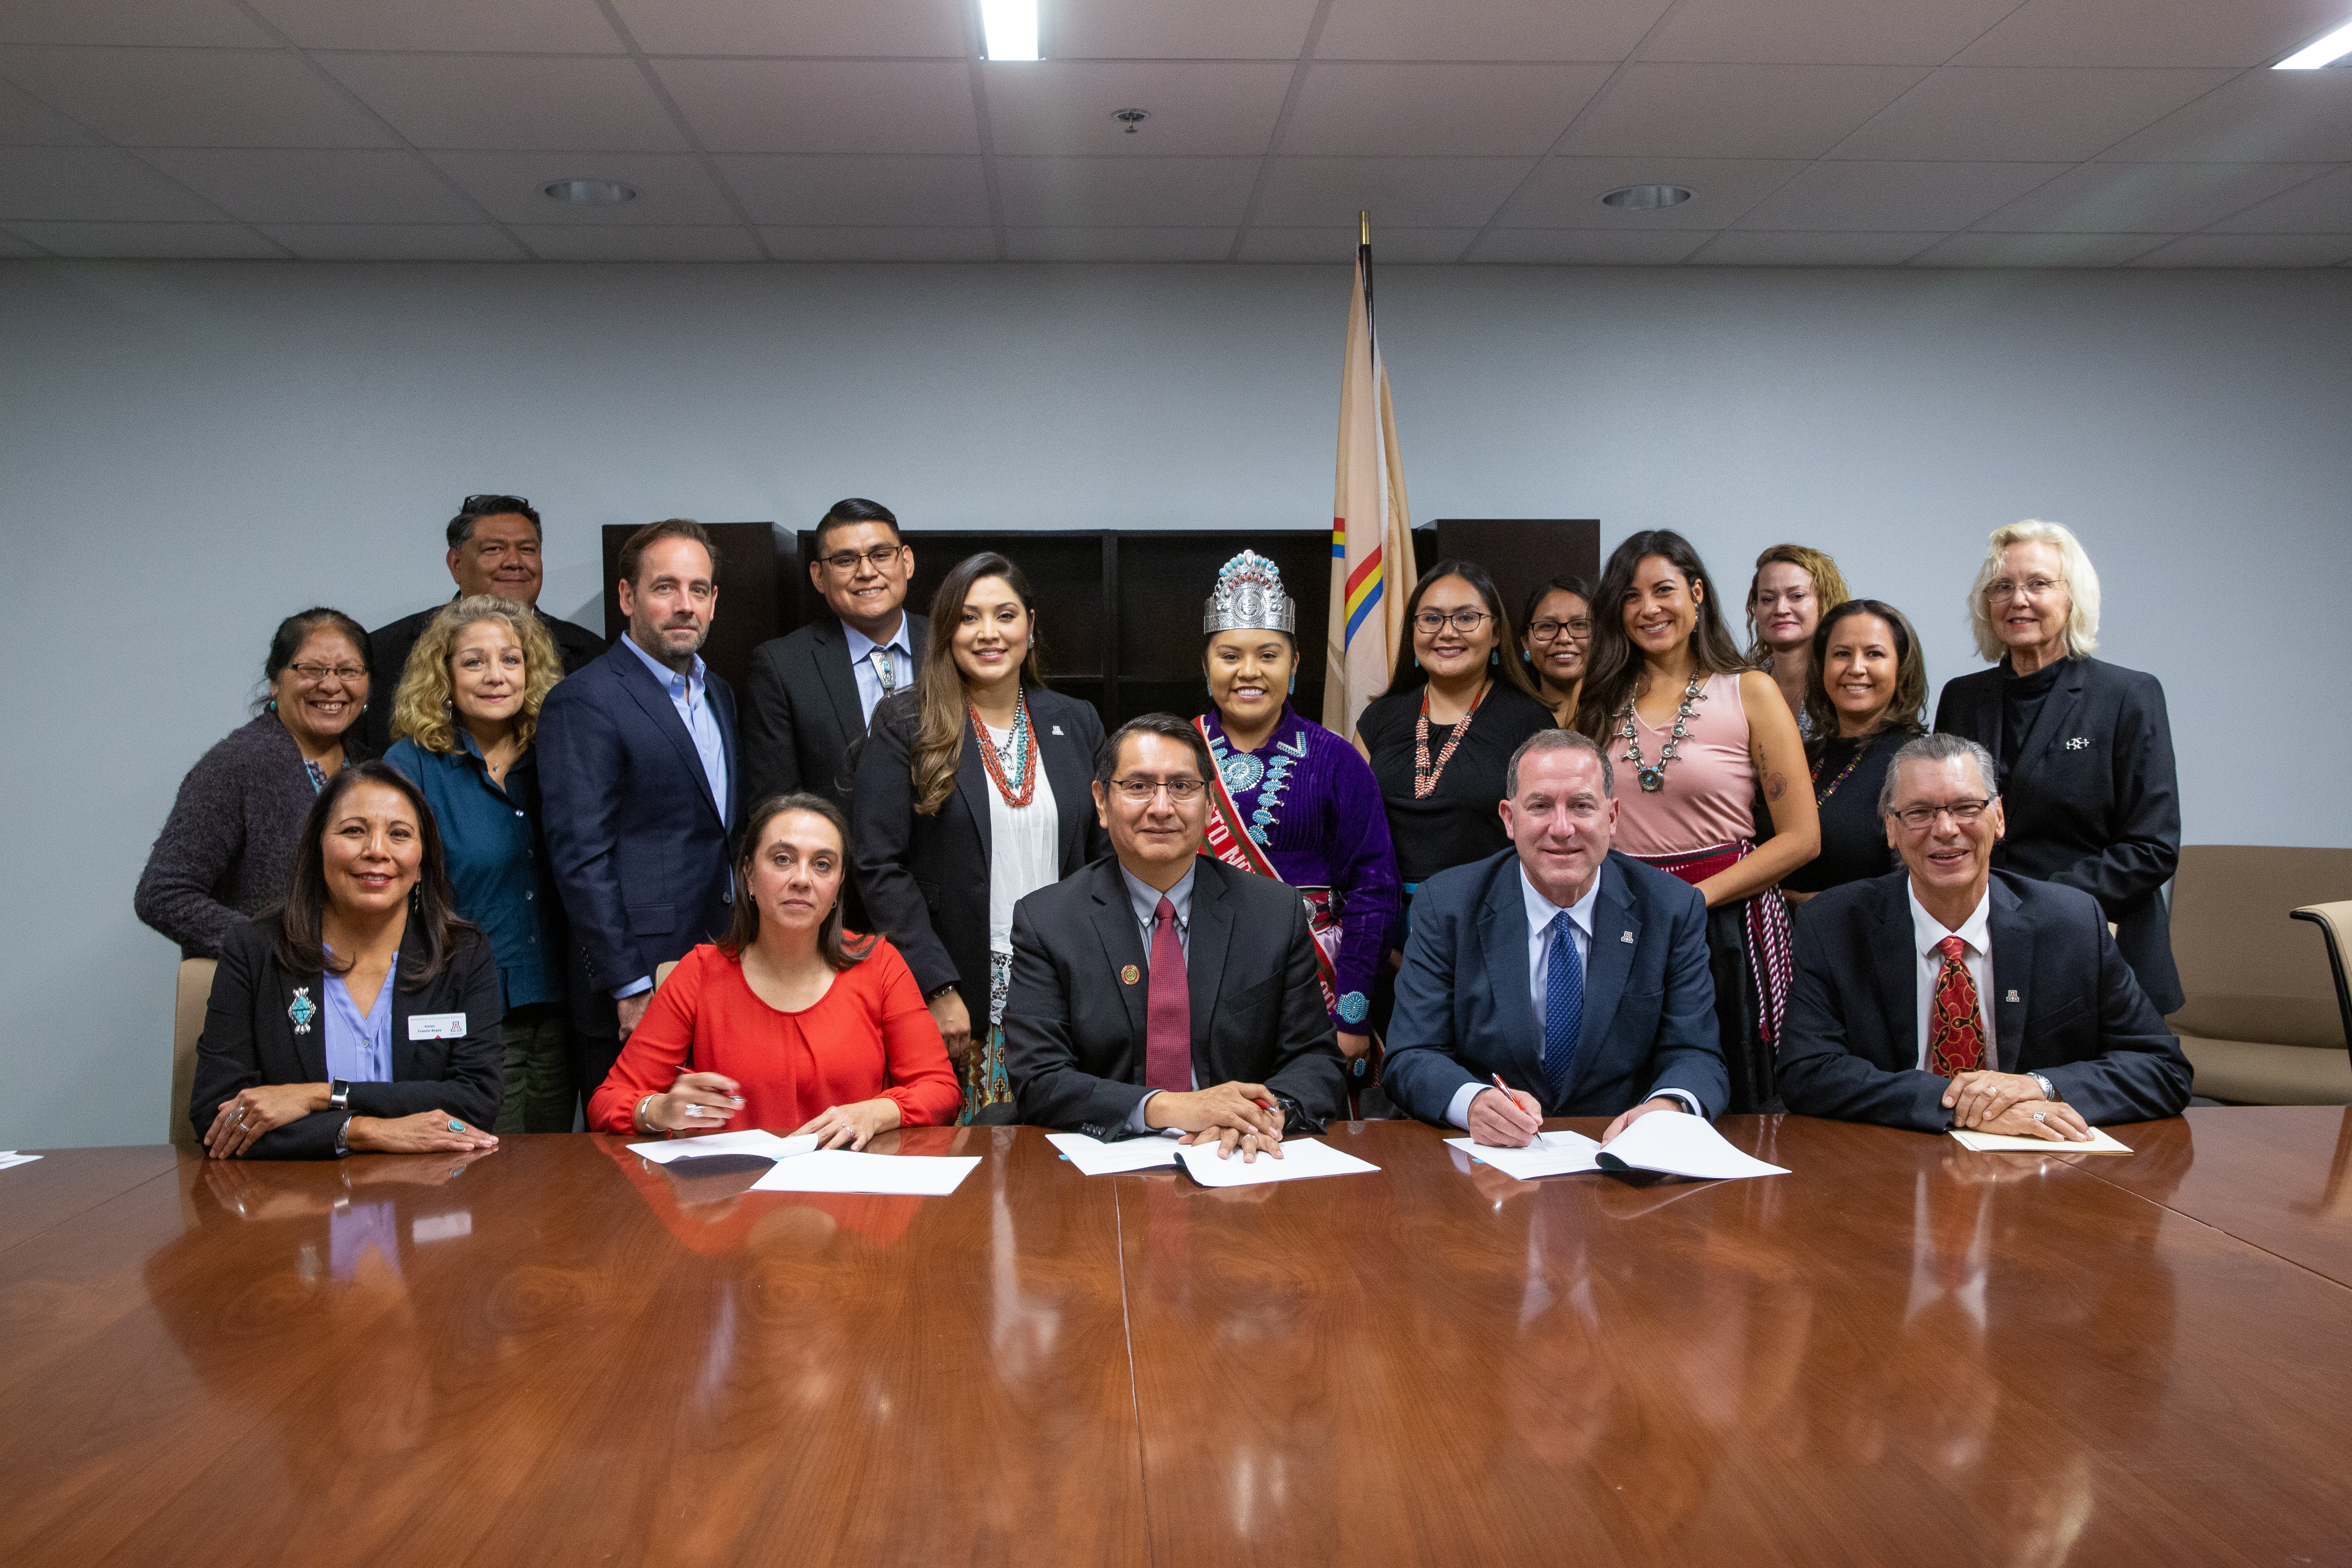 Representatives from the University of Arizona and the Navajo Nation gathered in a group to sign a memorandum of agreement establishing a new fellowship program